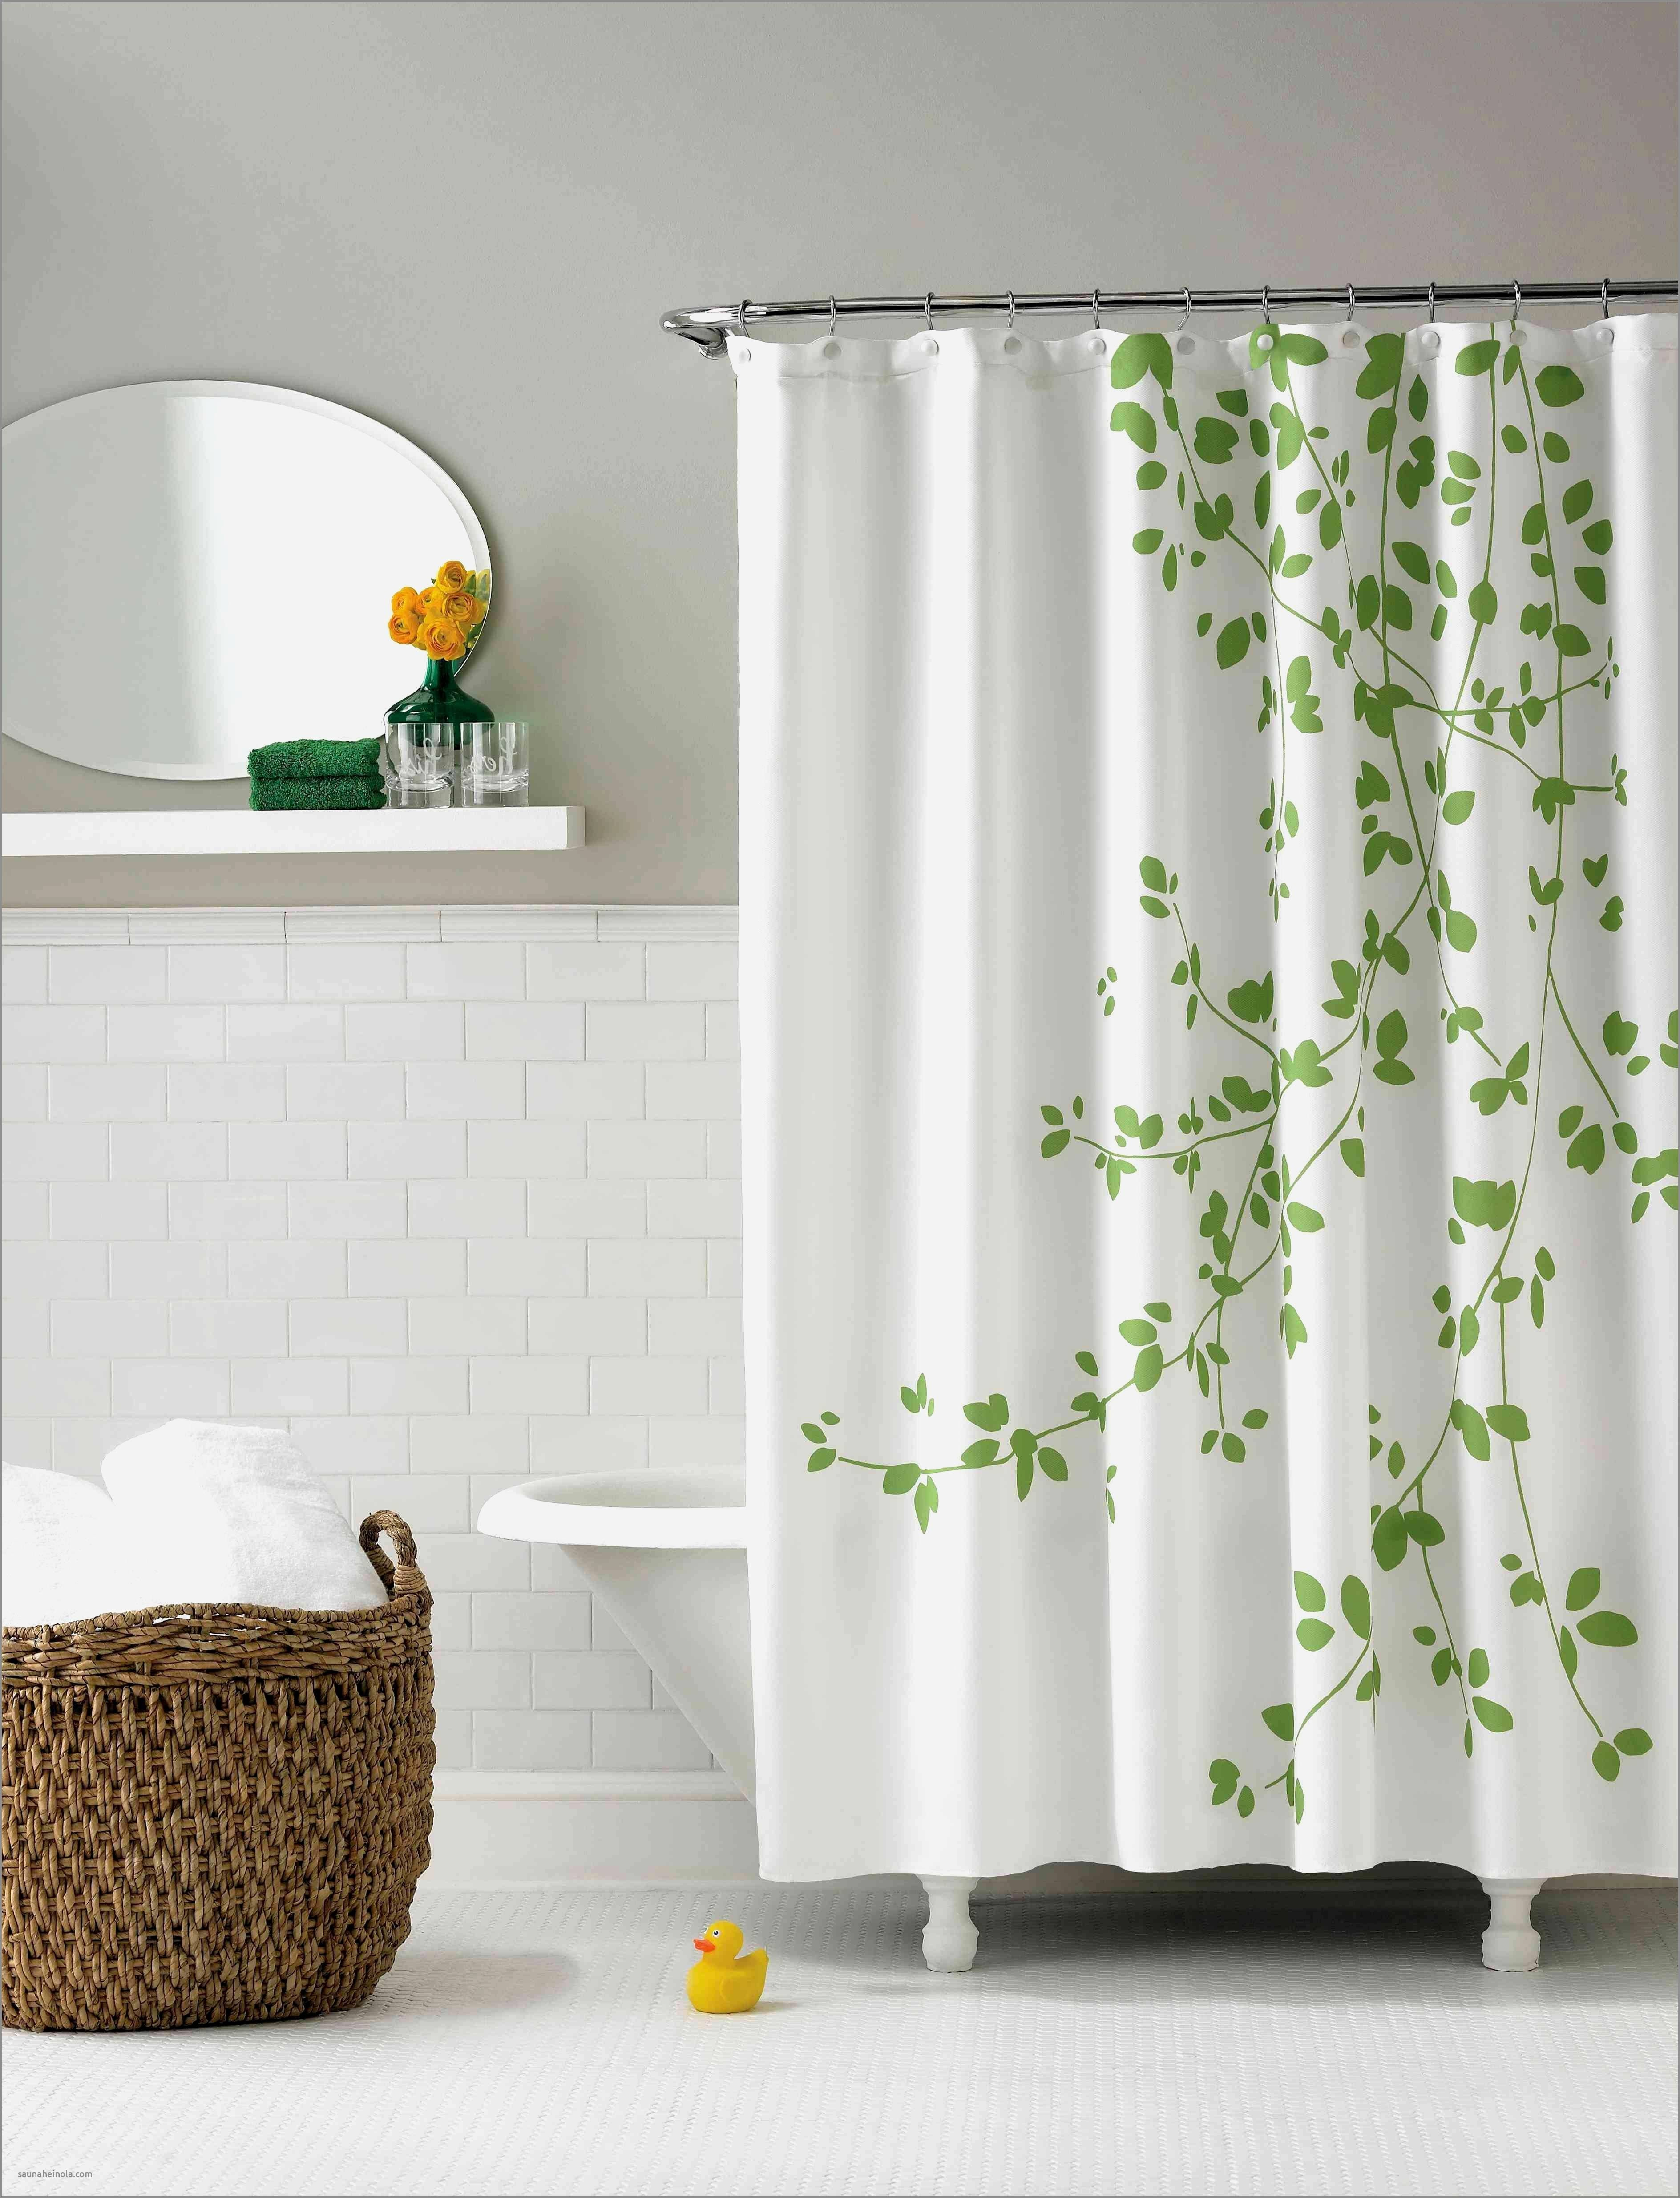 Extra Wide Shower Curtain For Clawfoot Tub